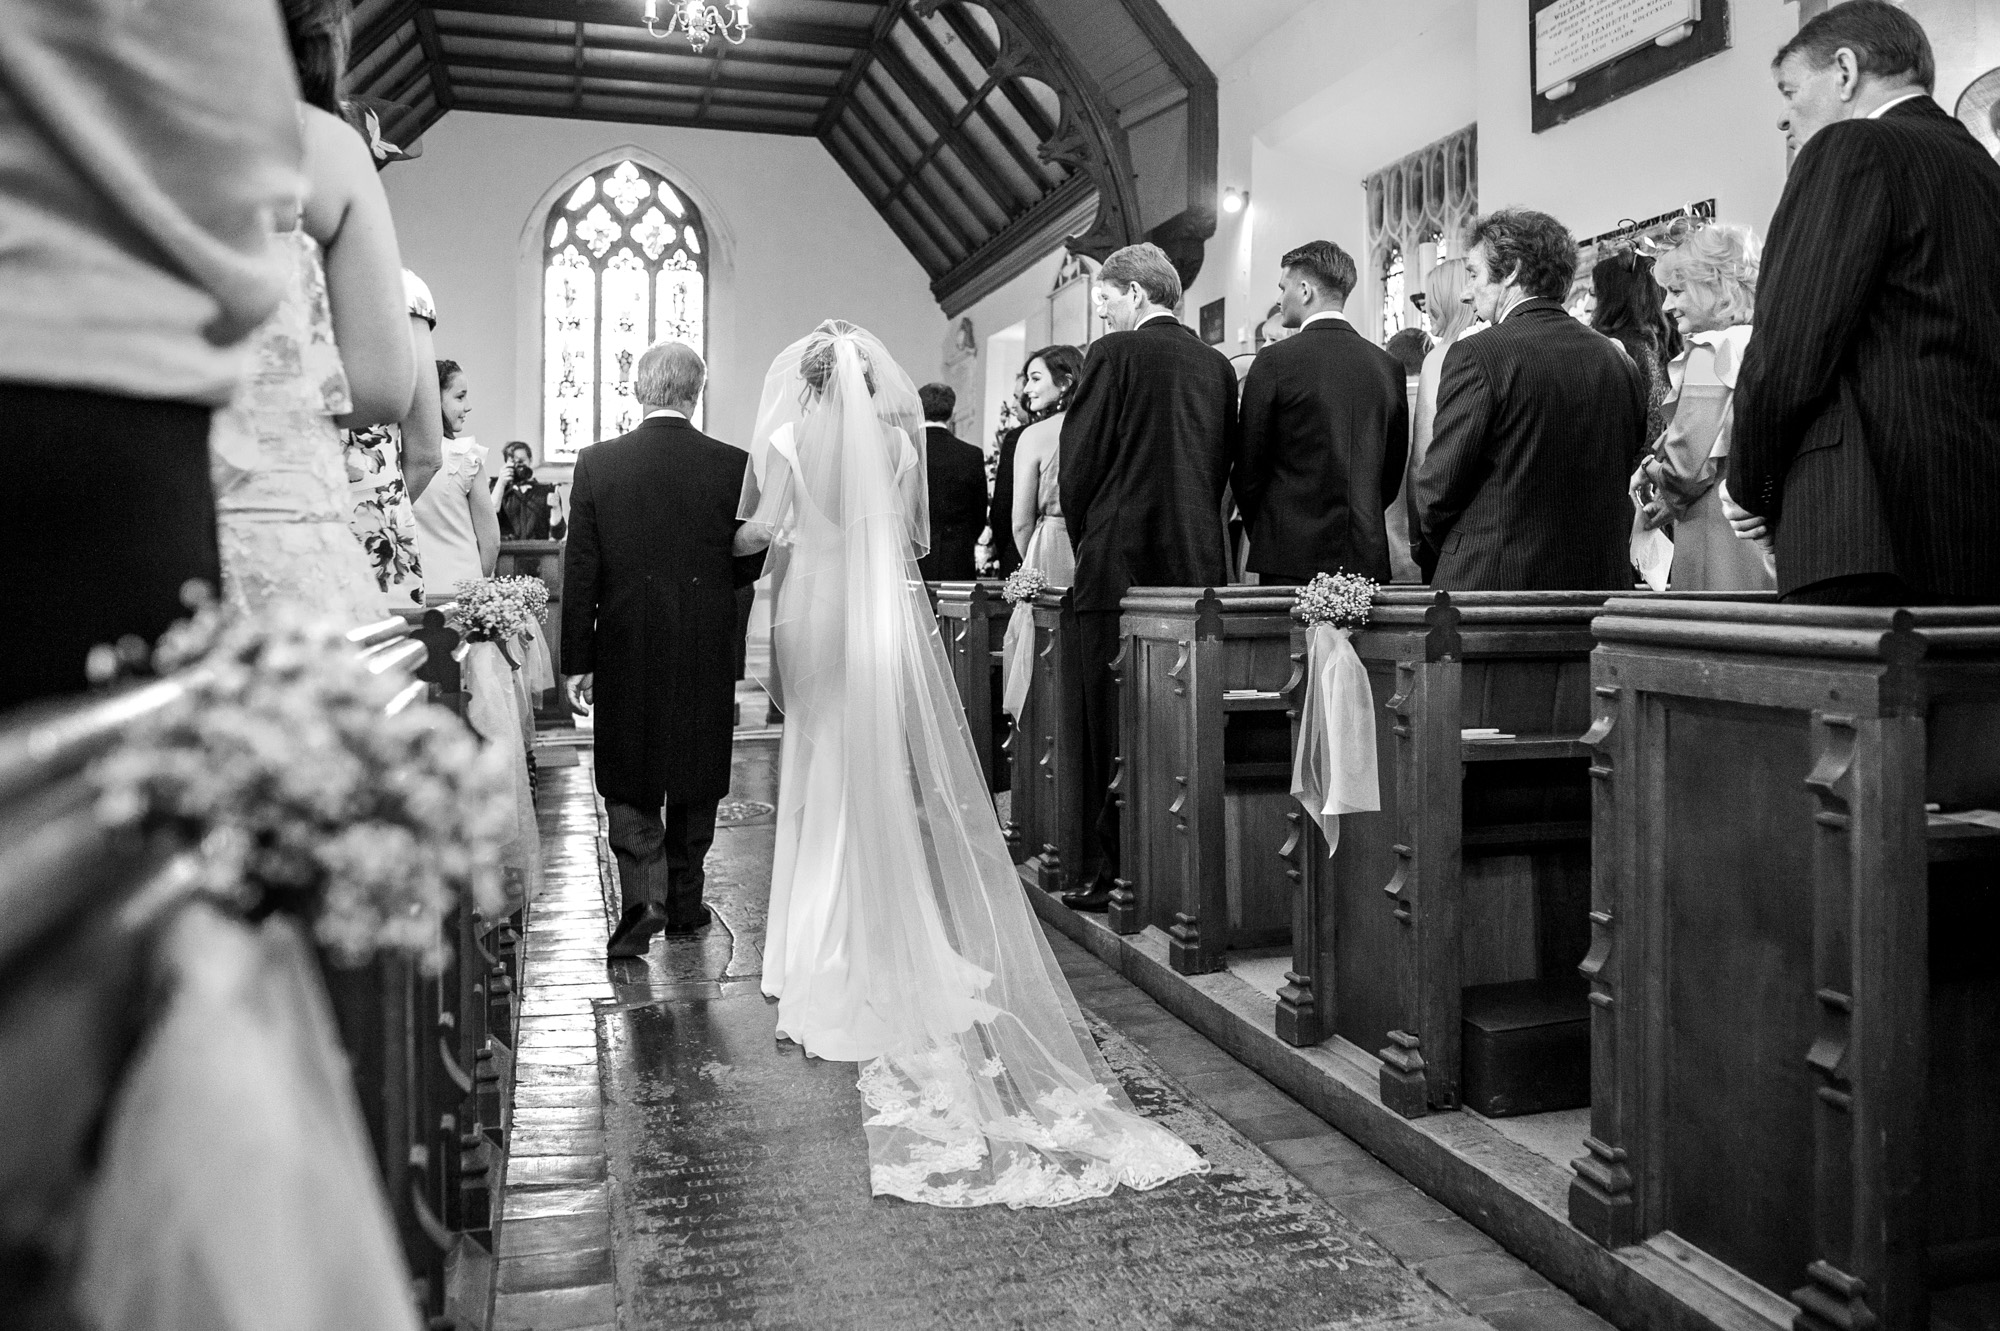 Cotswold Wedding Photography 11.09.1814.jpg